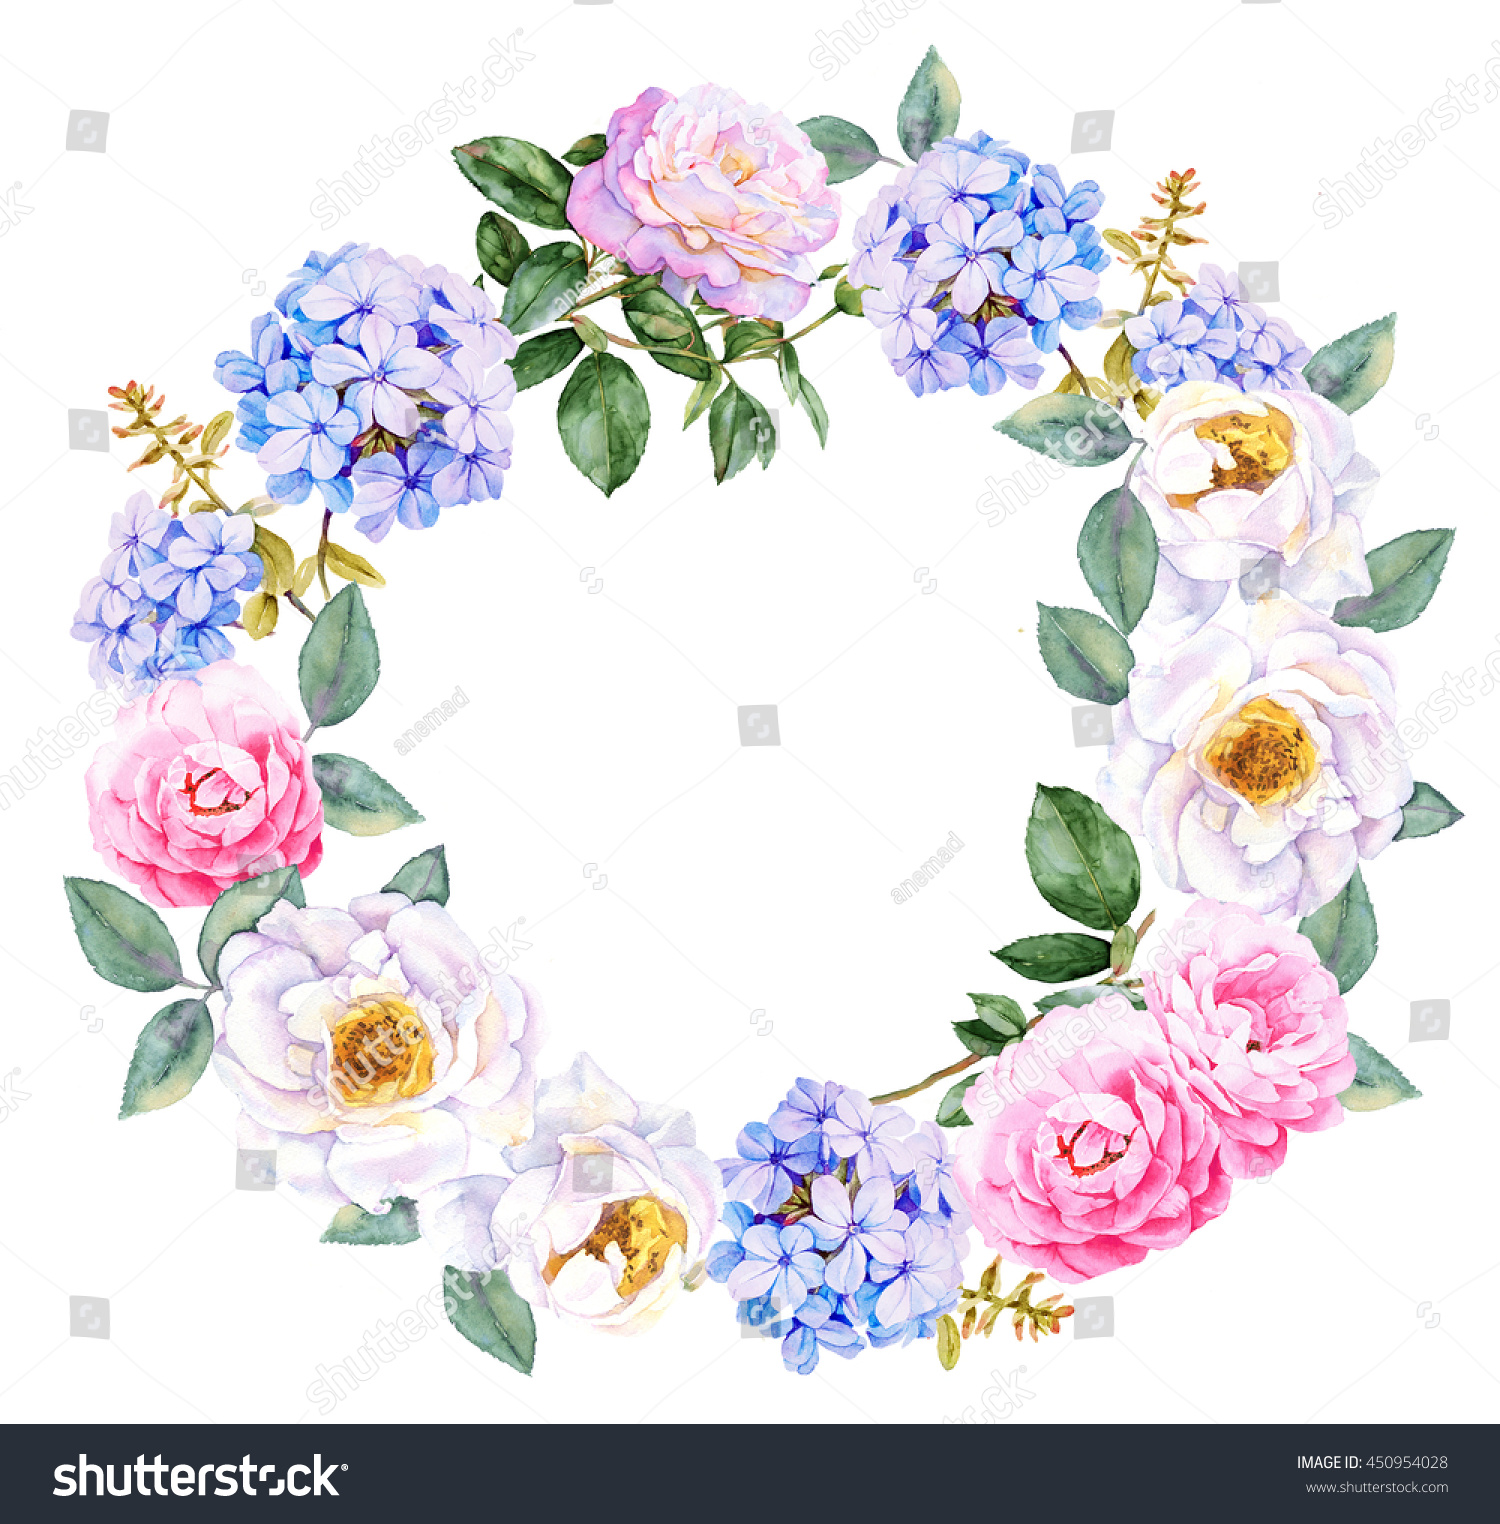 Watercolor Flowers Wreath Roses Blue Jasmine Stock Illustration